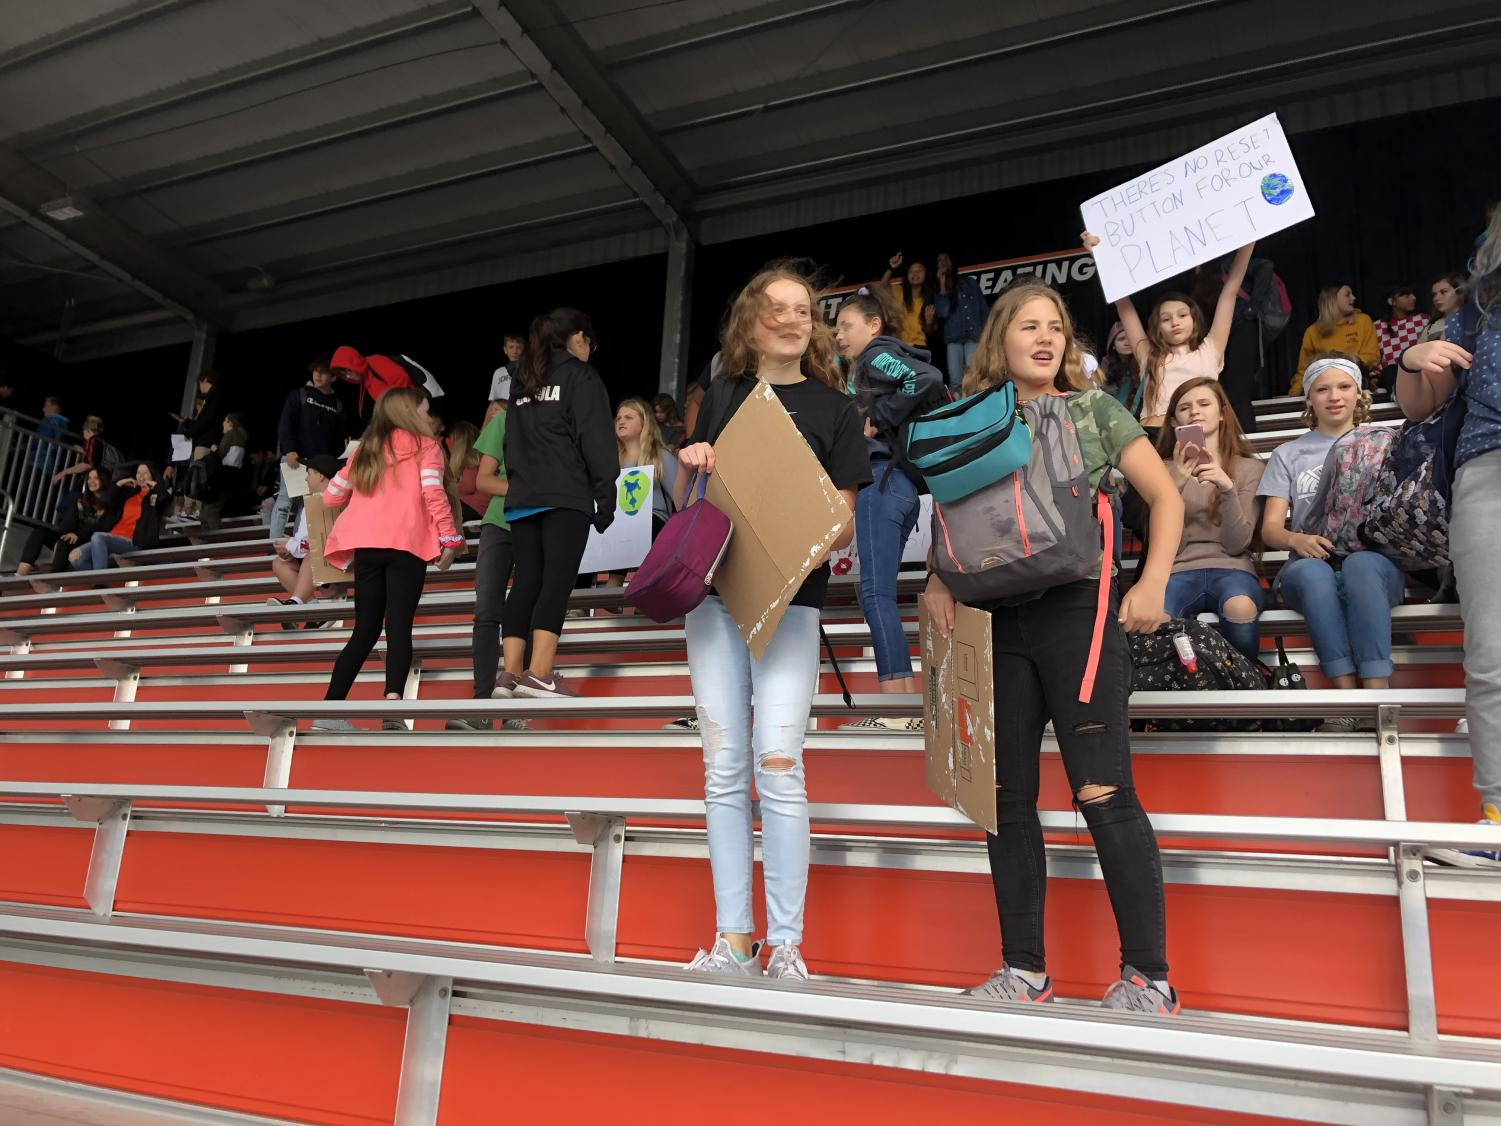 Group of Central Kitsap Middle Schoolers strike for Climate Policy on the High School bleachers during the Sept. 27 protests.